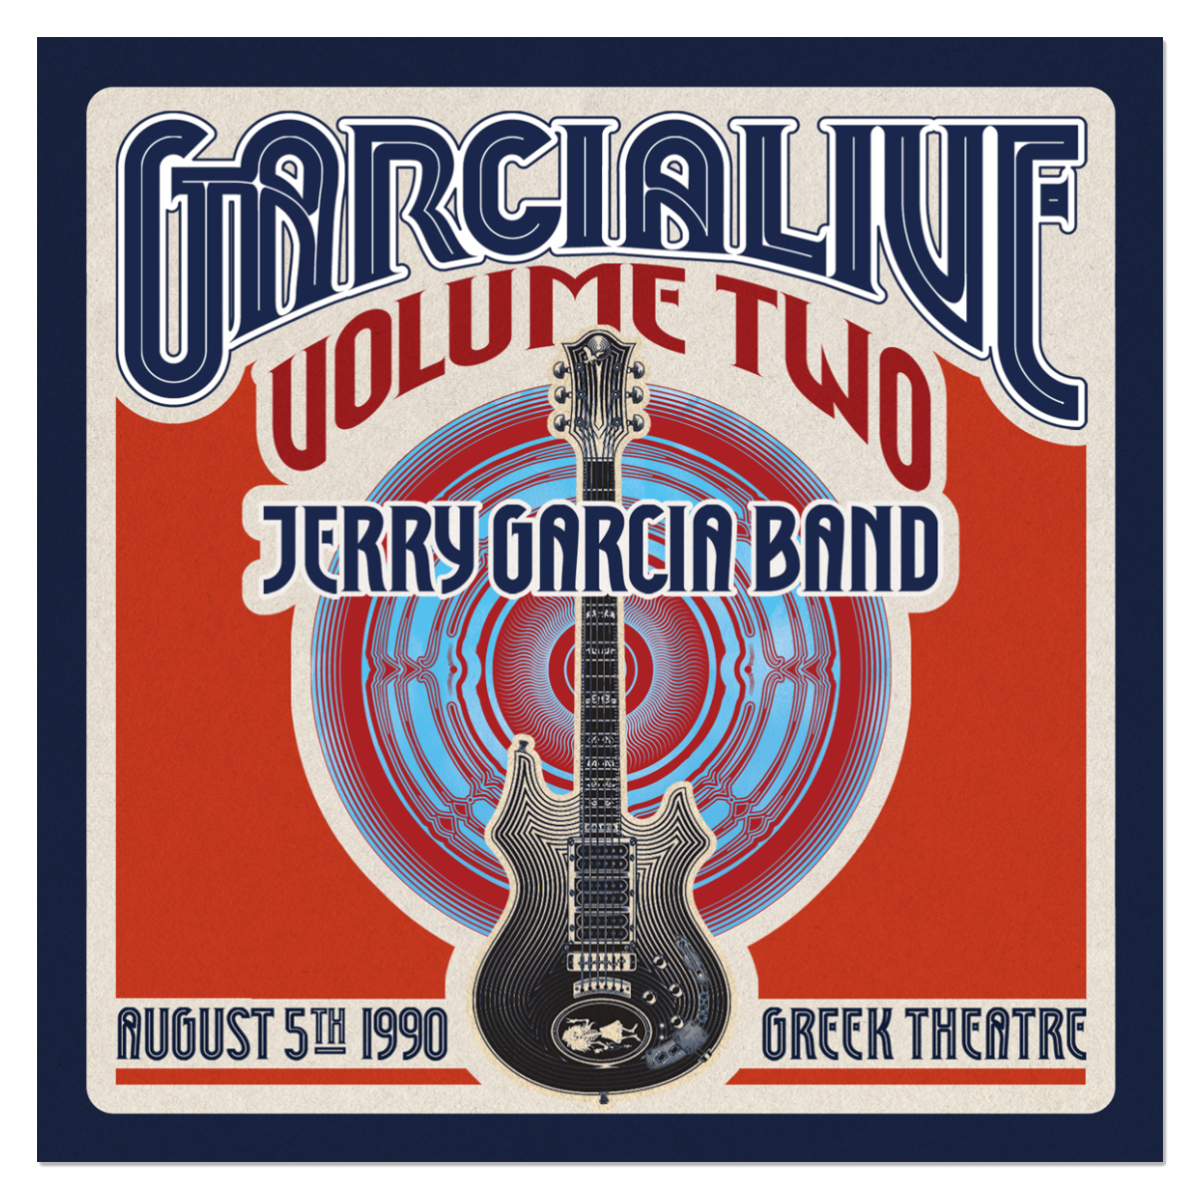 Jerry Garcia Band - GarciaLive Volume 2: 8/5/90 2-CD Set